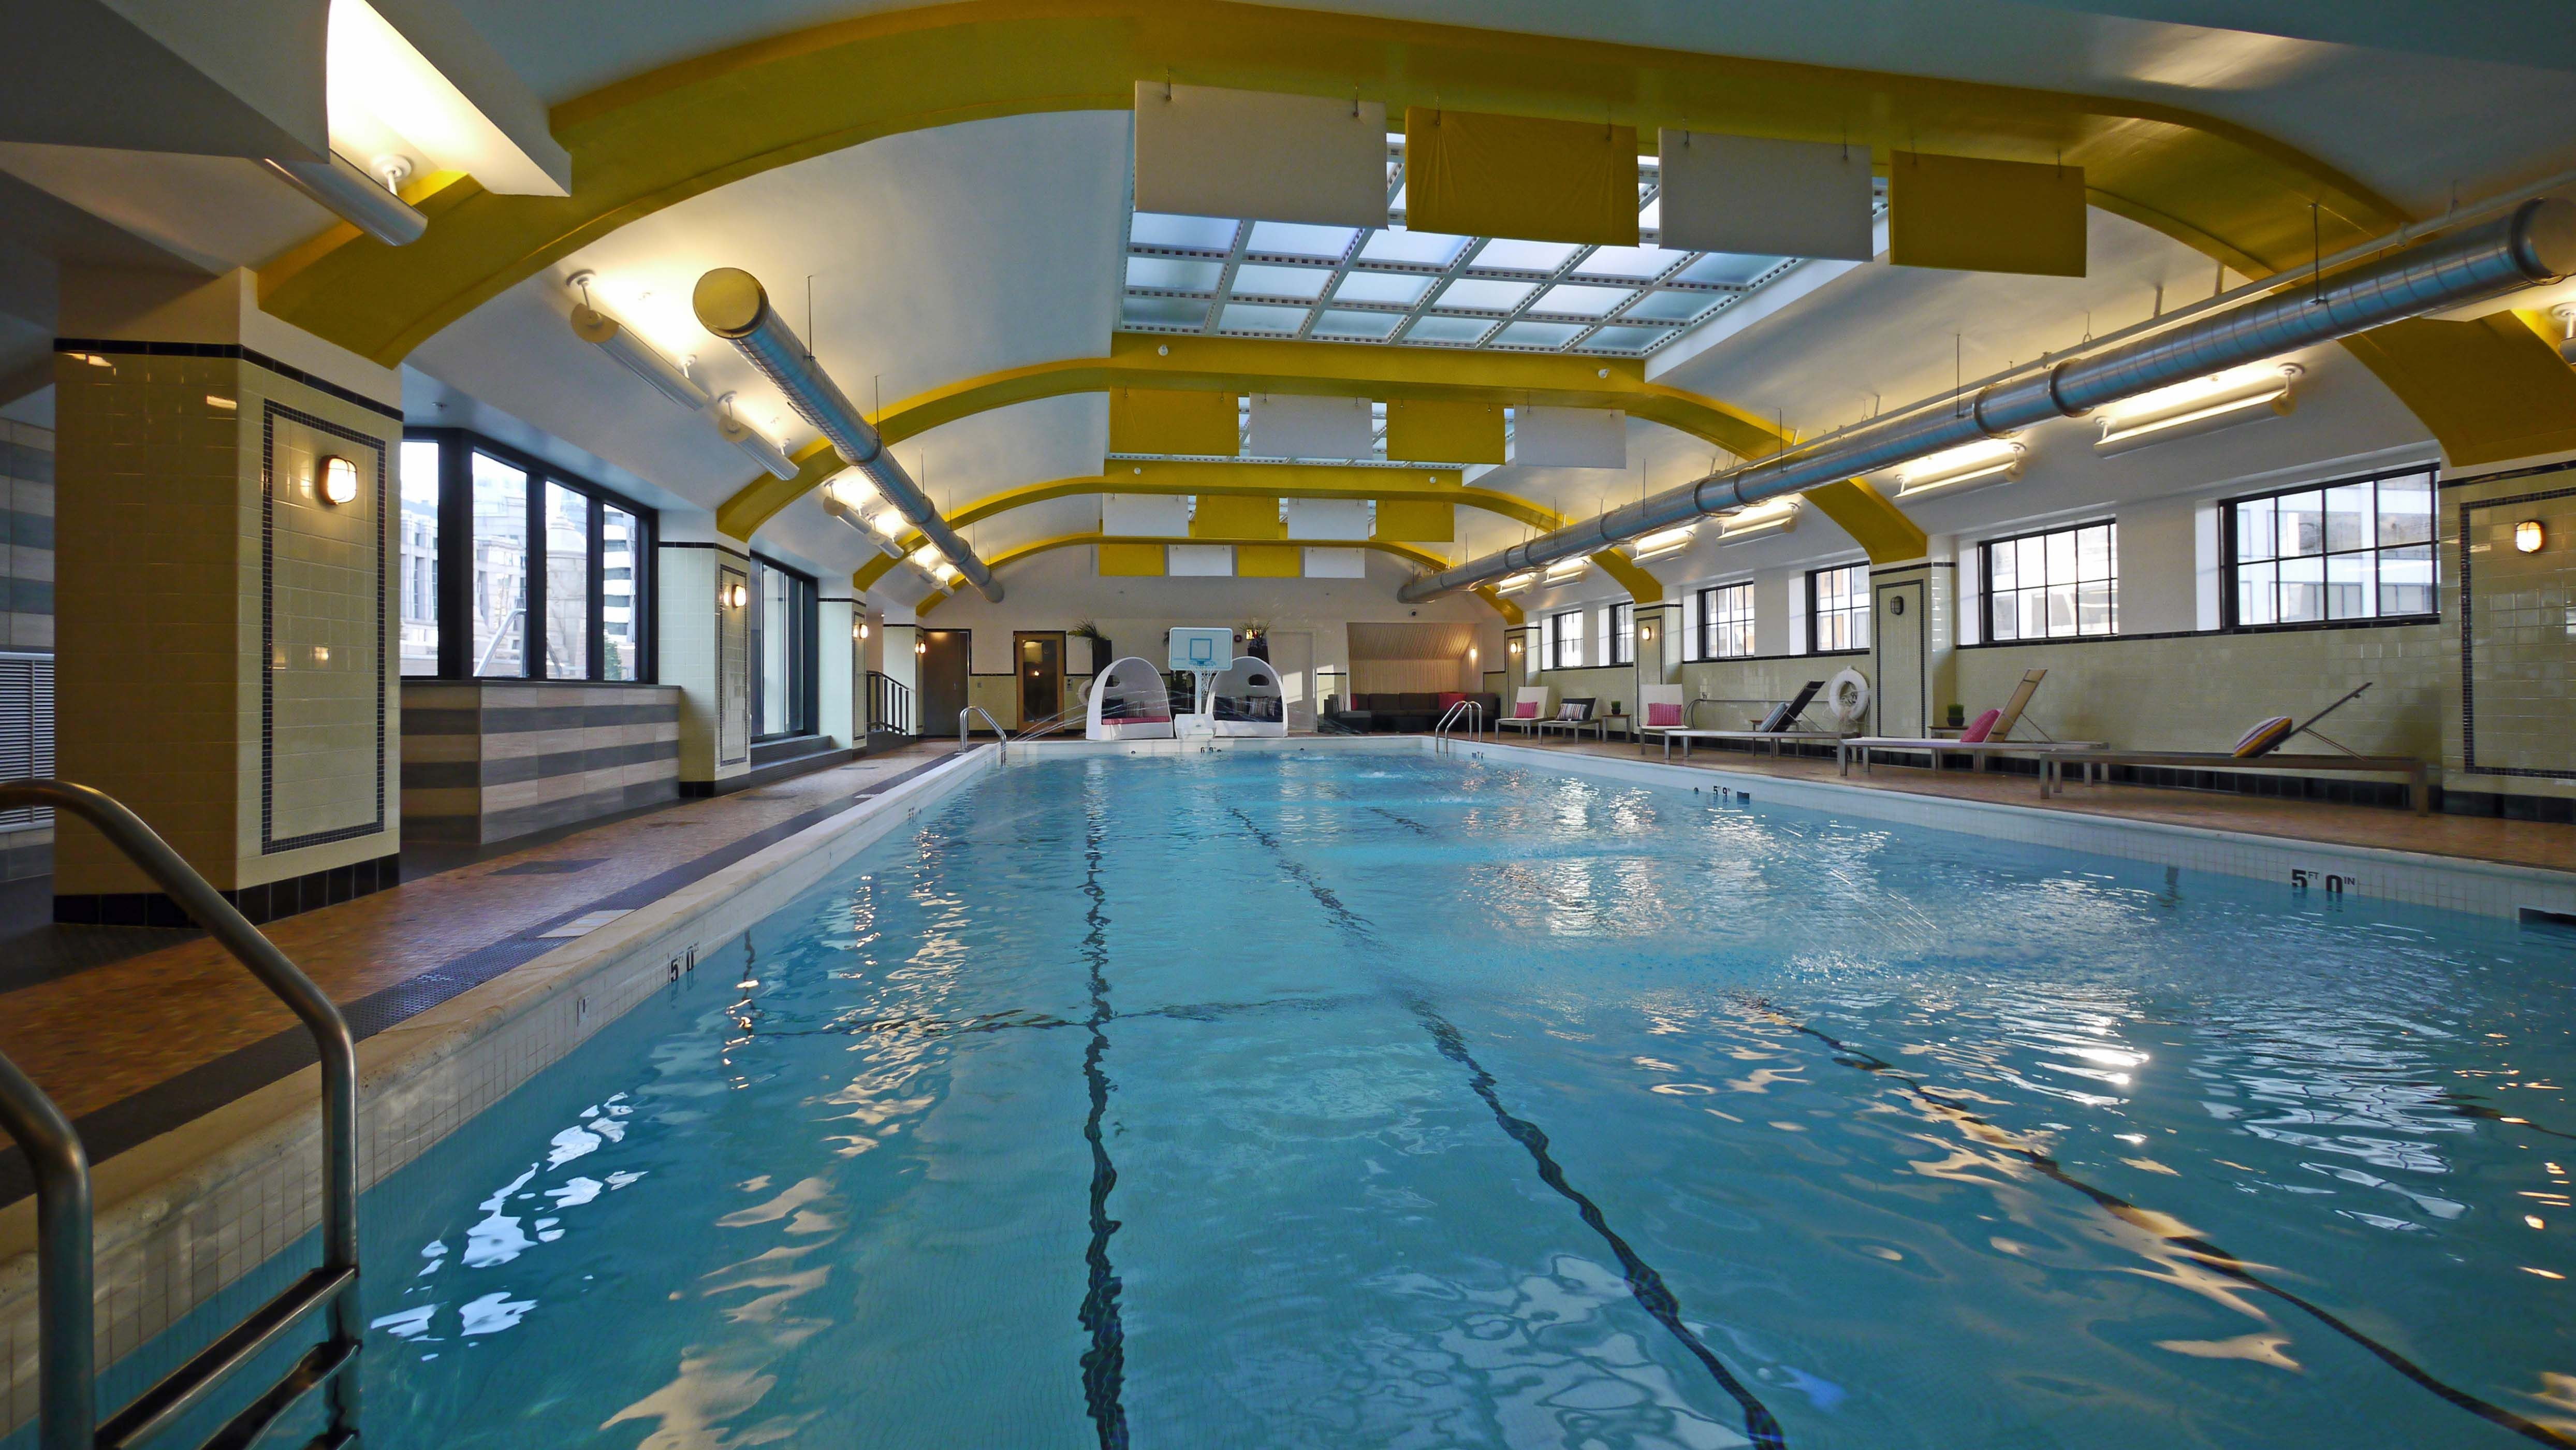 Emejing Indoor Swimming Pool Chicago Pictures - Decoration Design ...